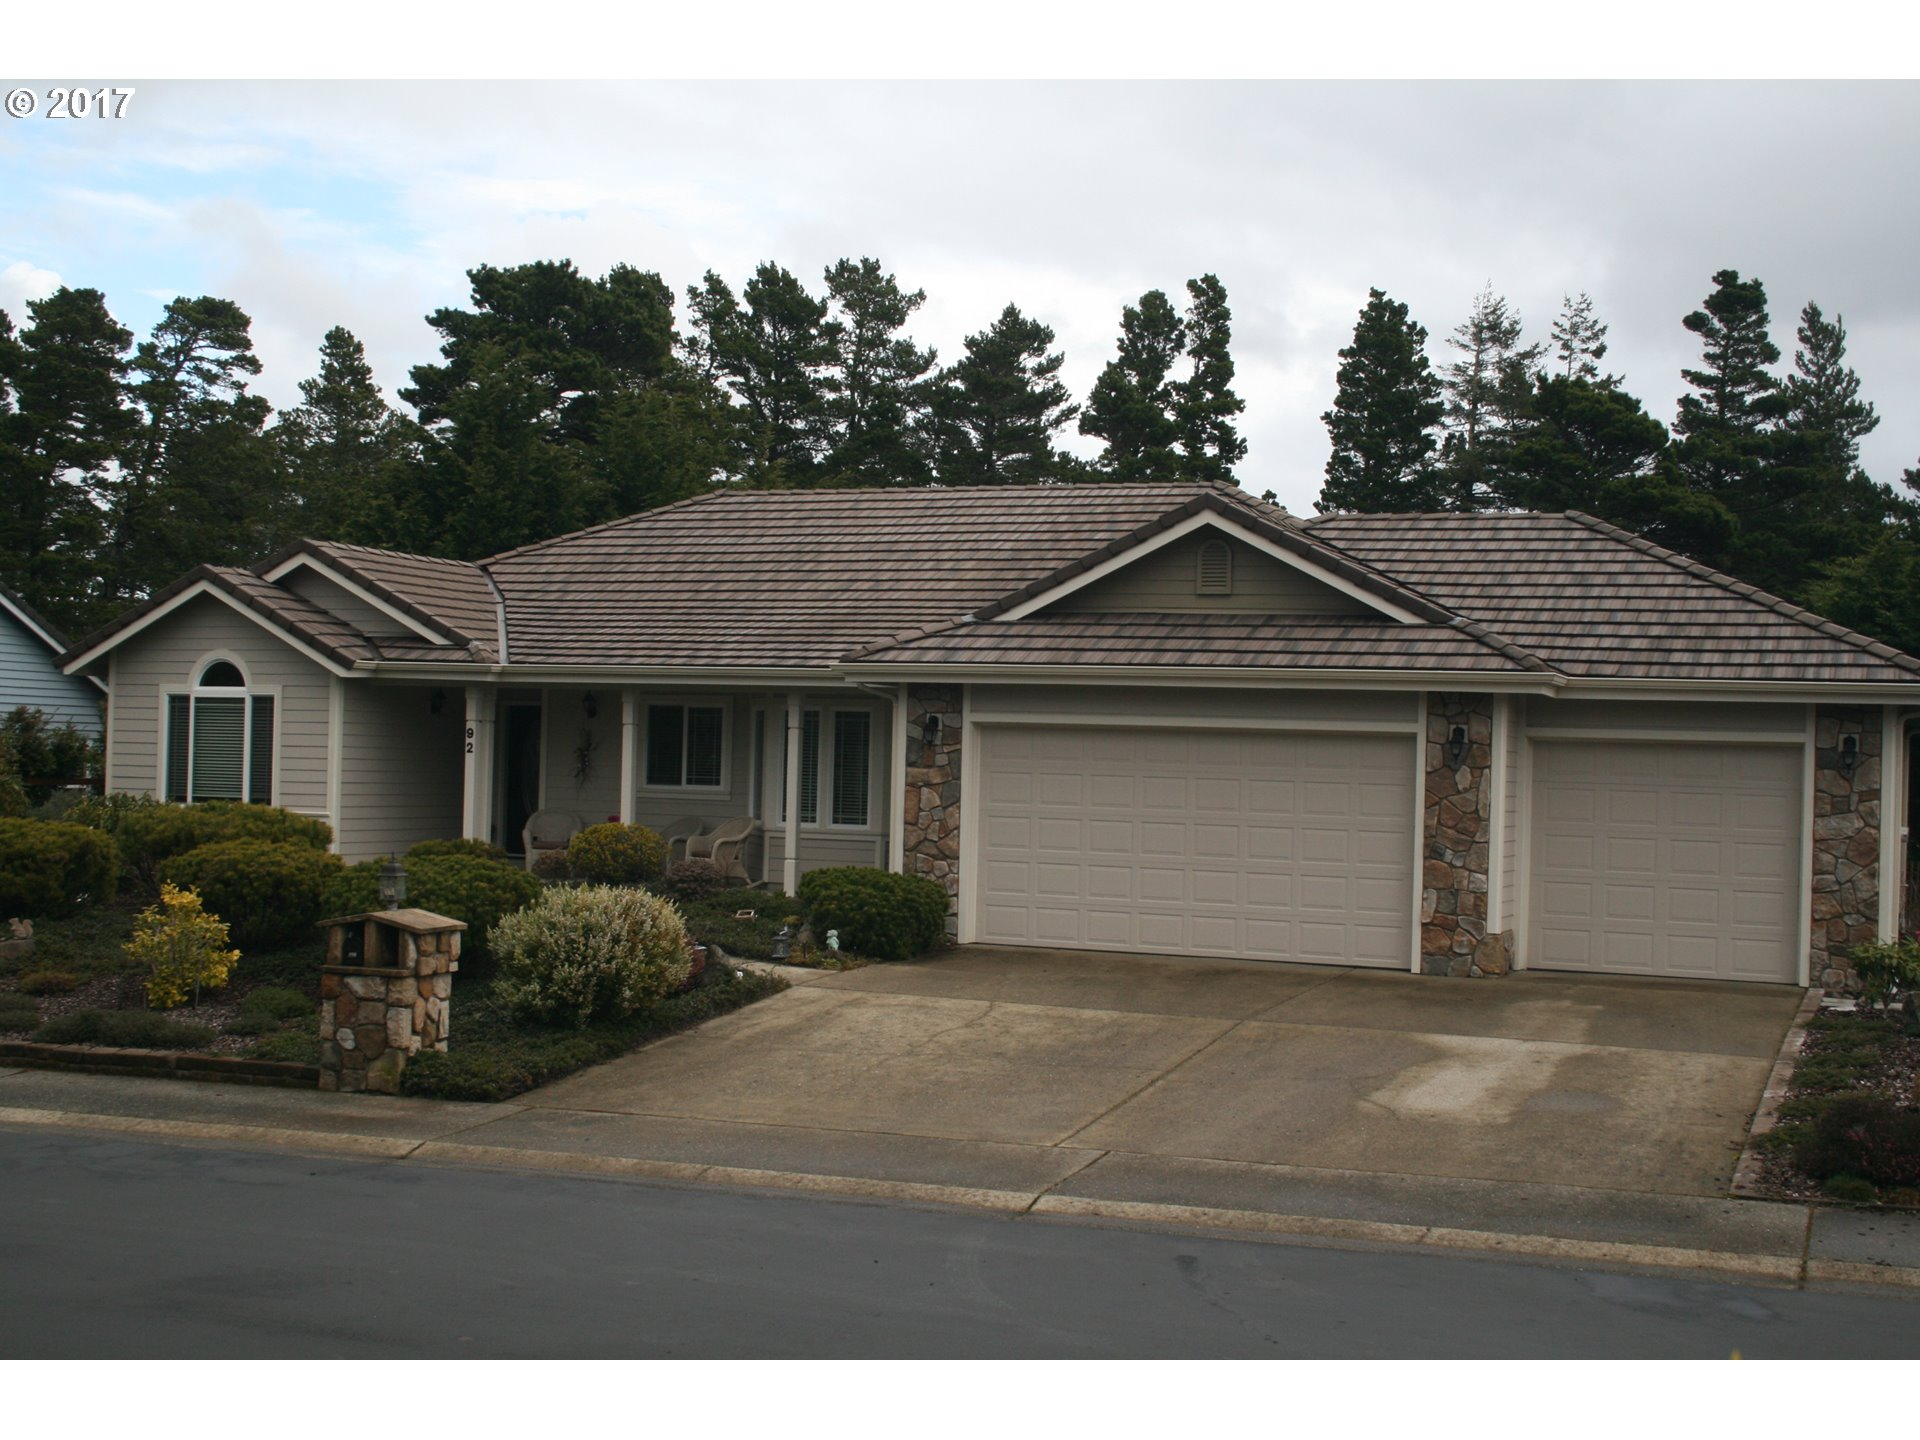 92 SAILORS RAVINE CT, Florence, OR 97439